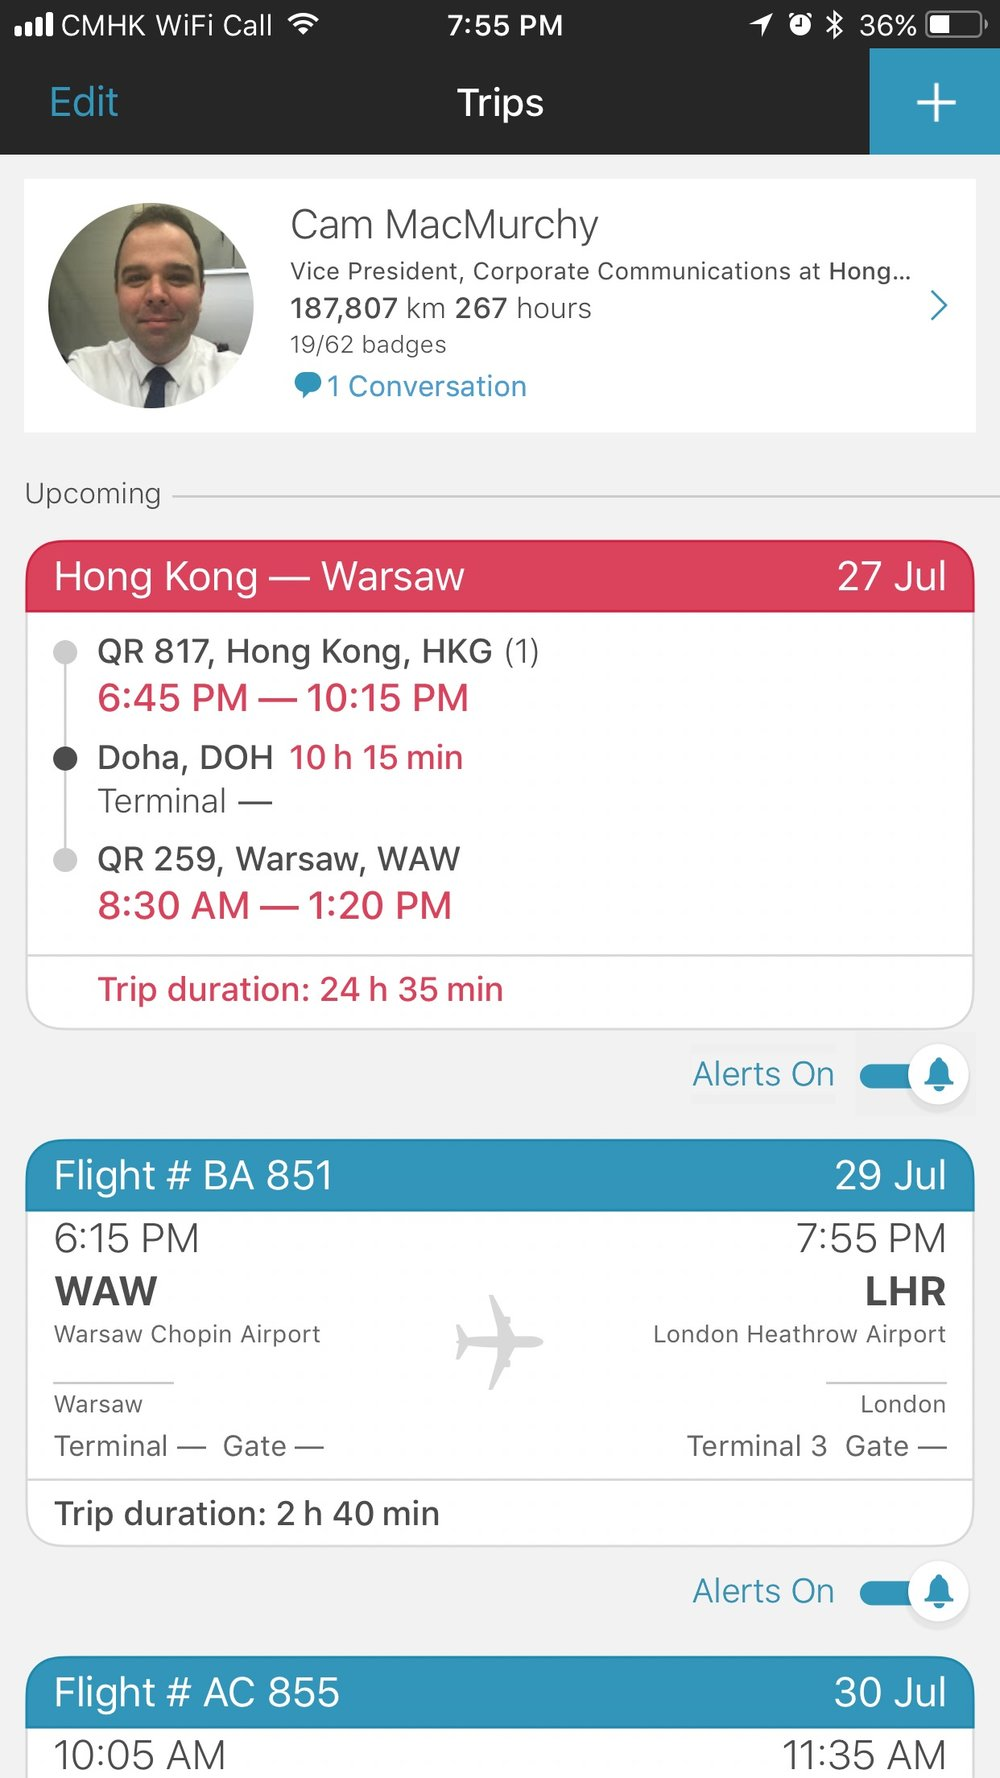 App in the Air showing my upcoming flights.